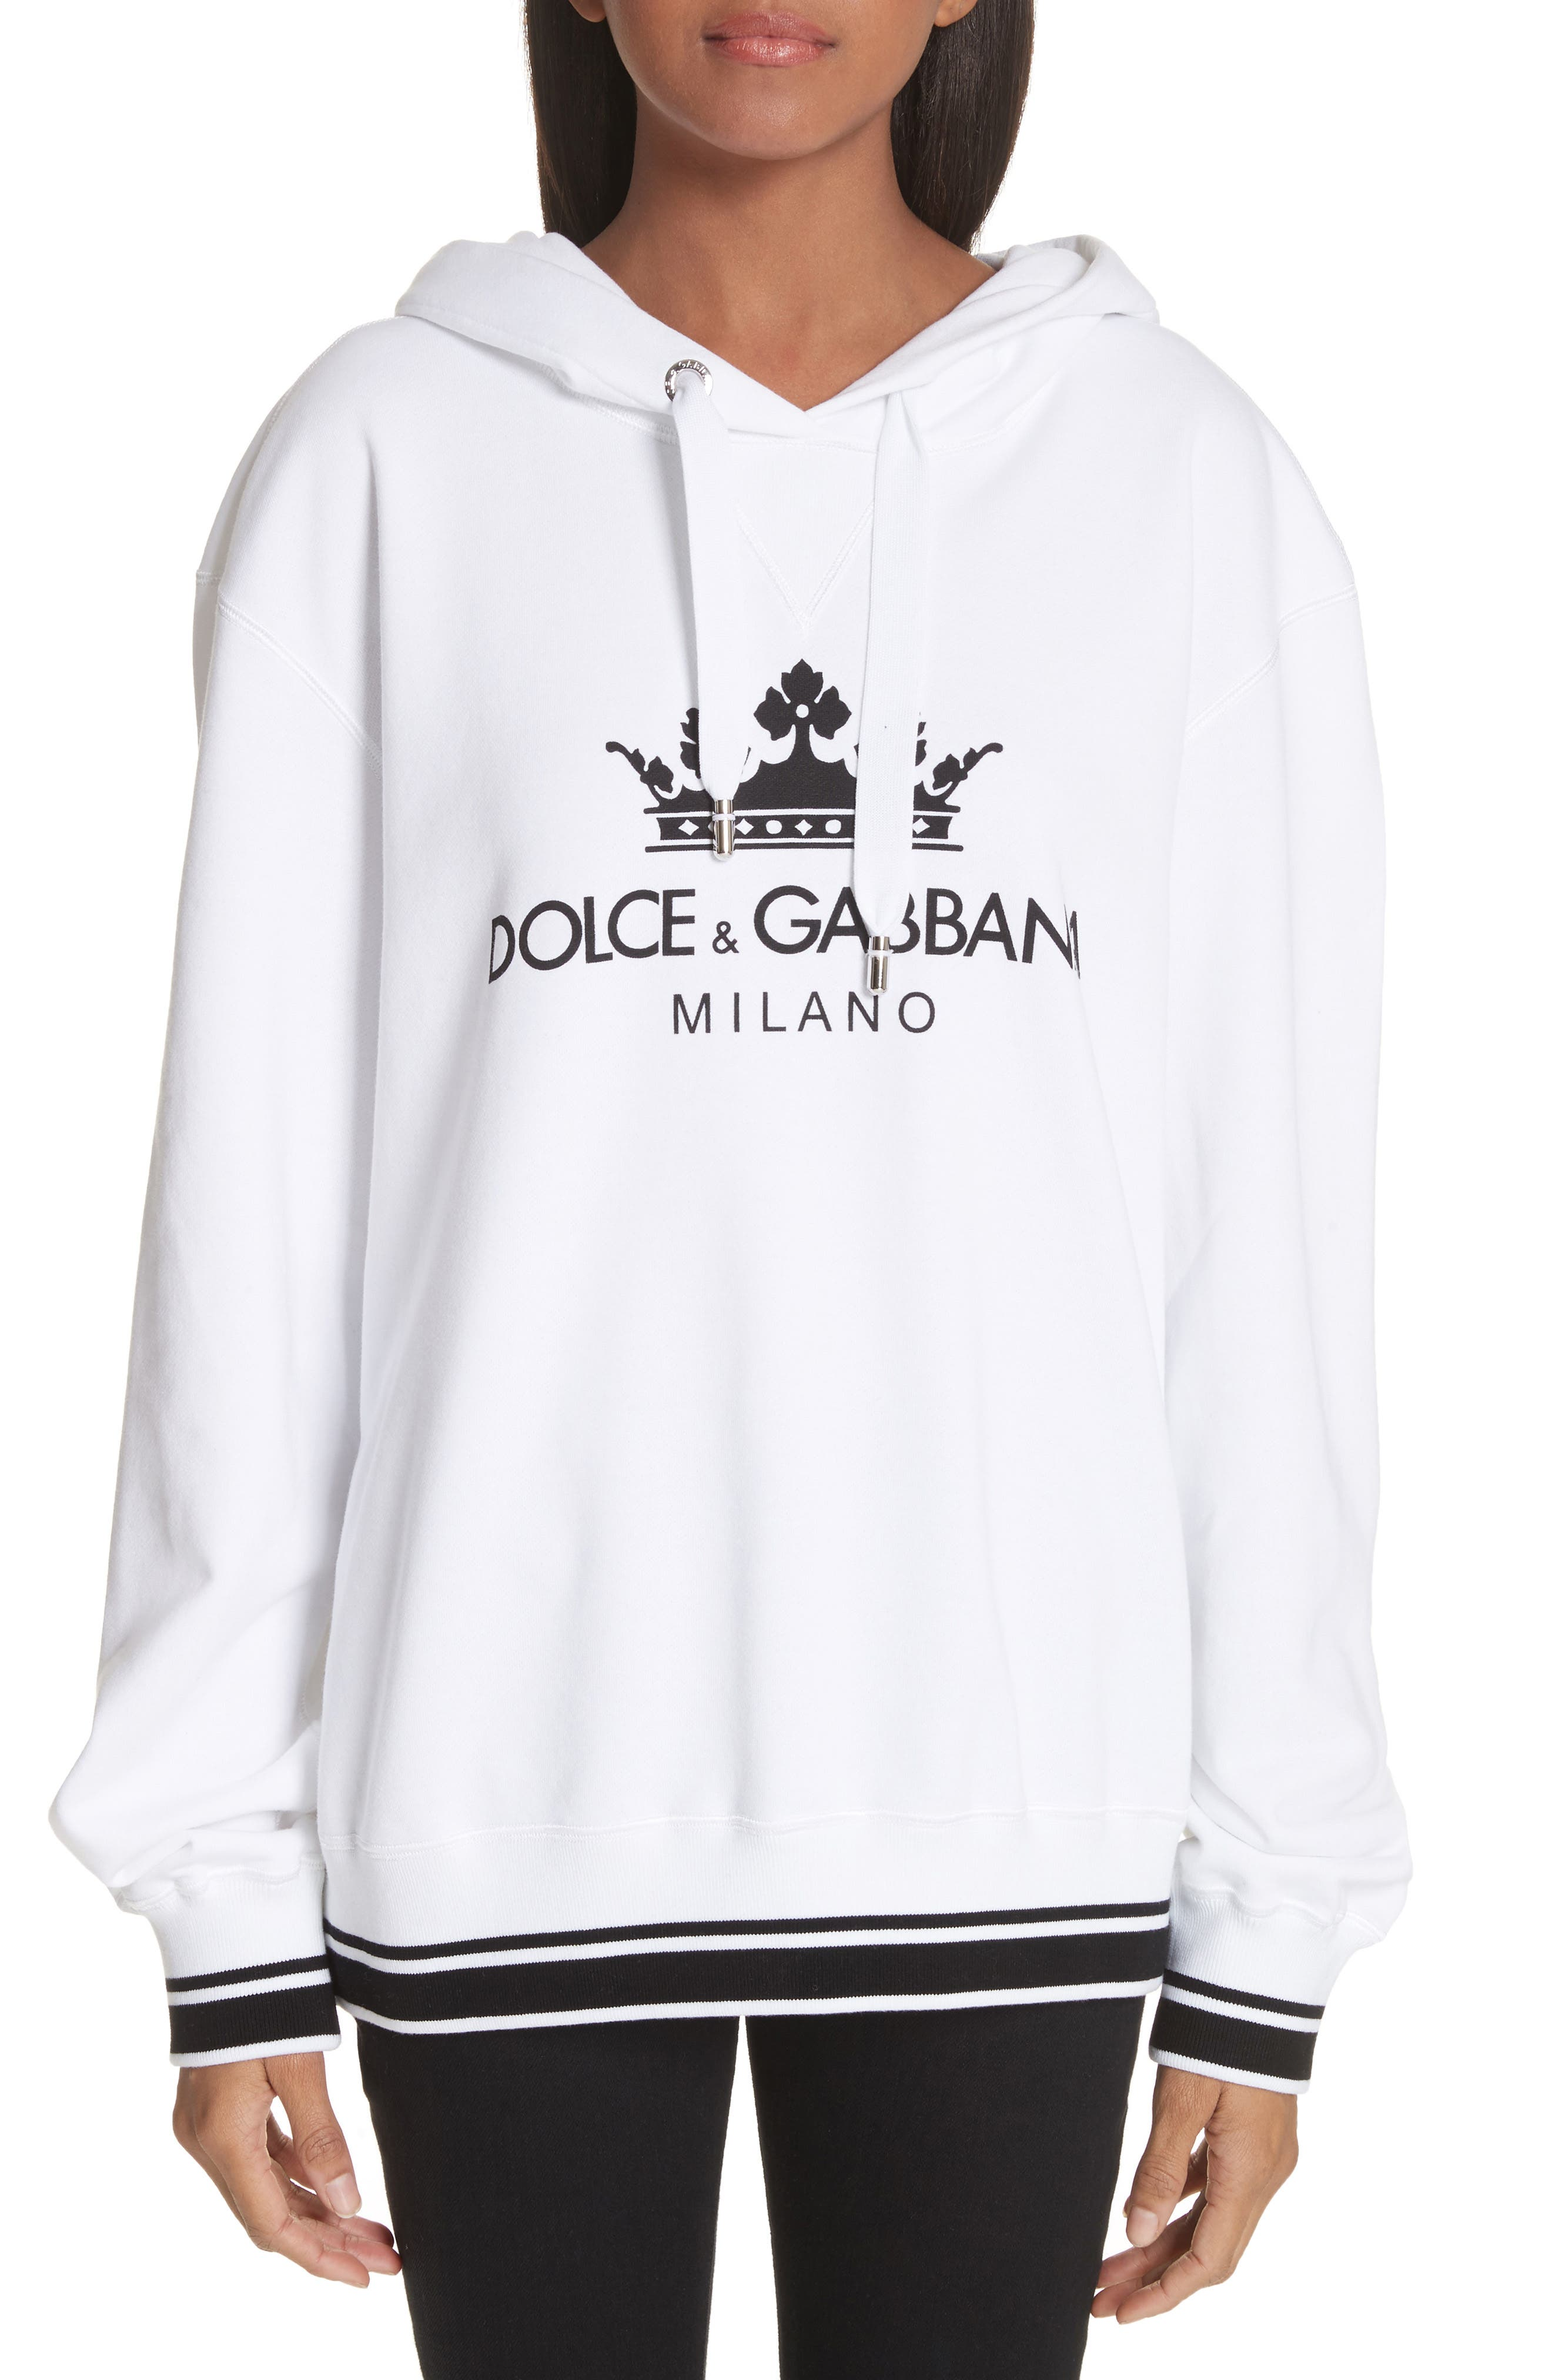 Dolce&Gabbana Logo Hooded Sweatshirt